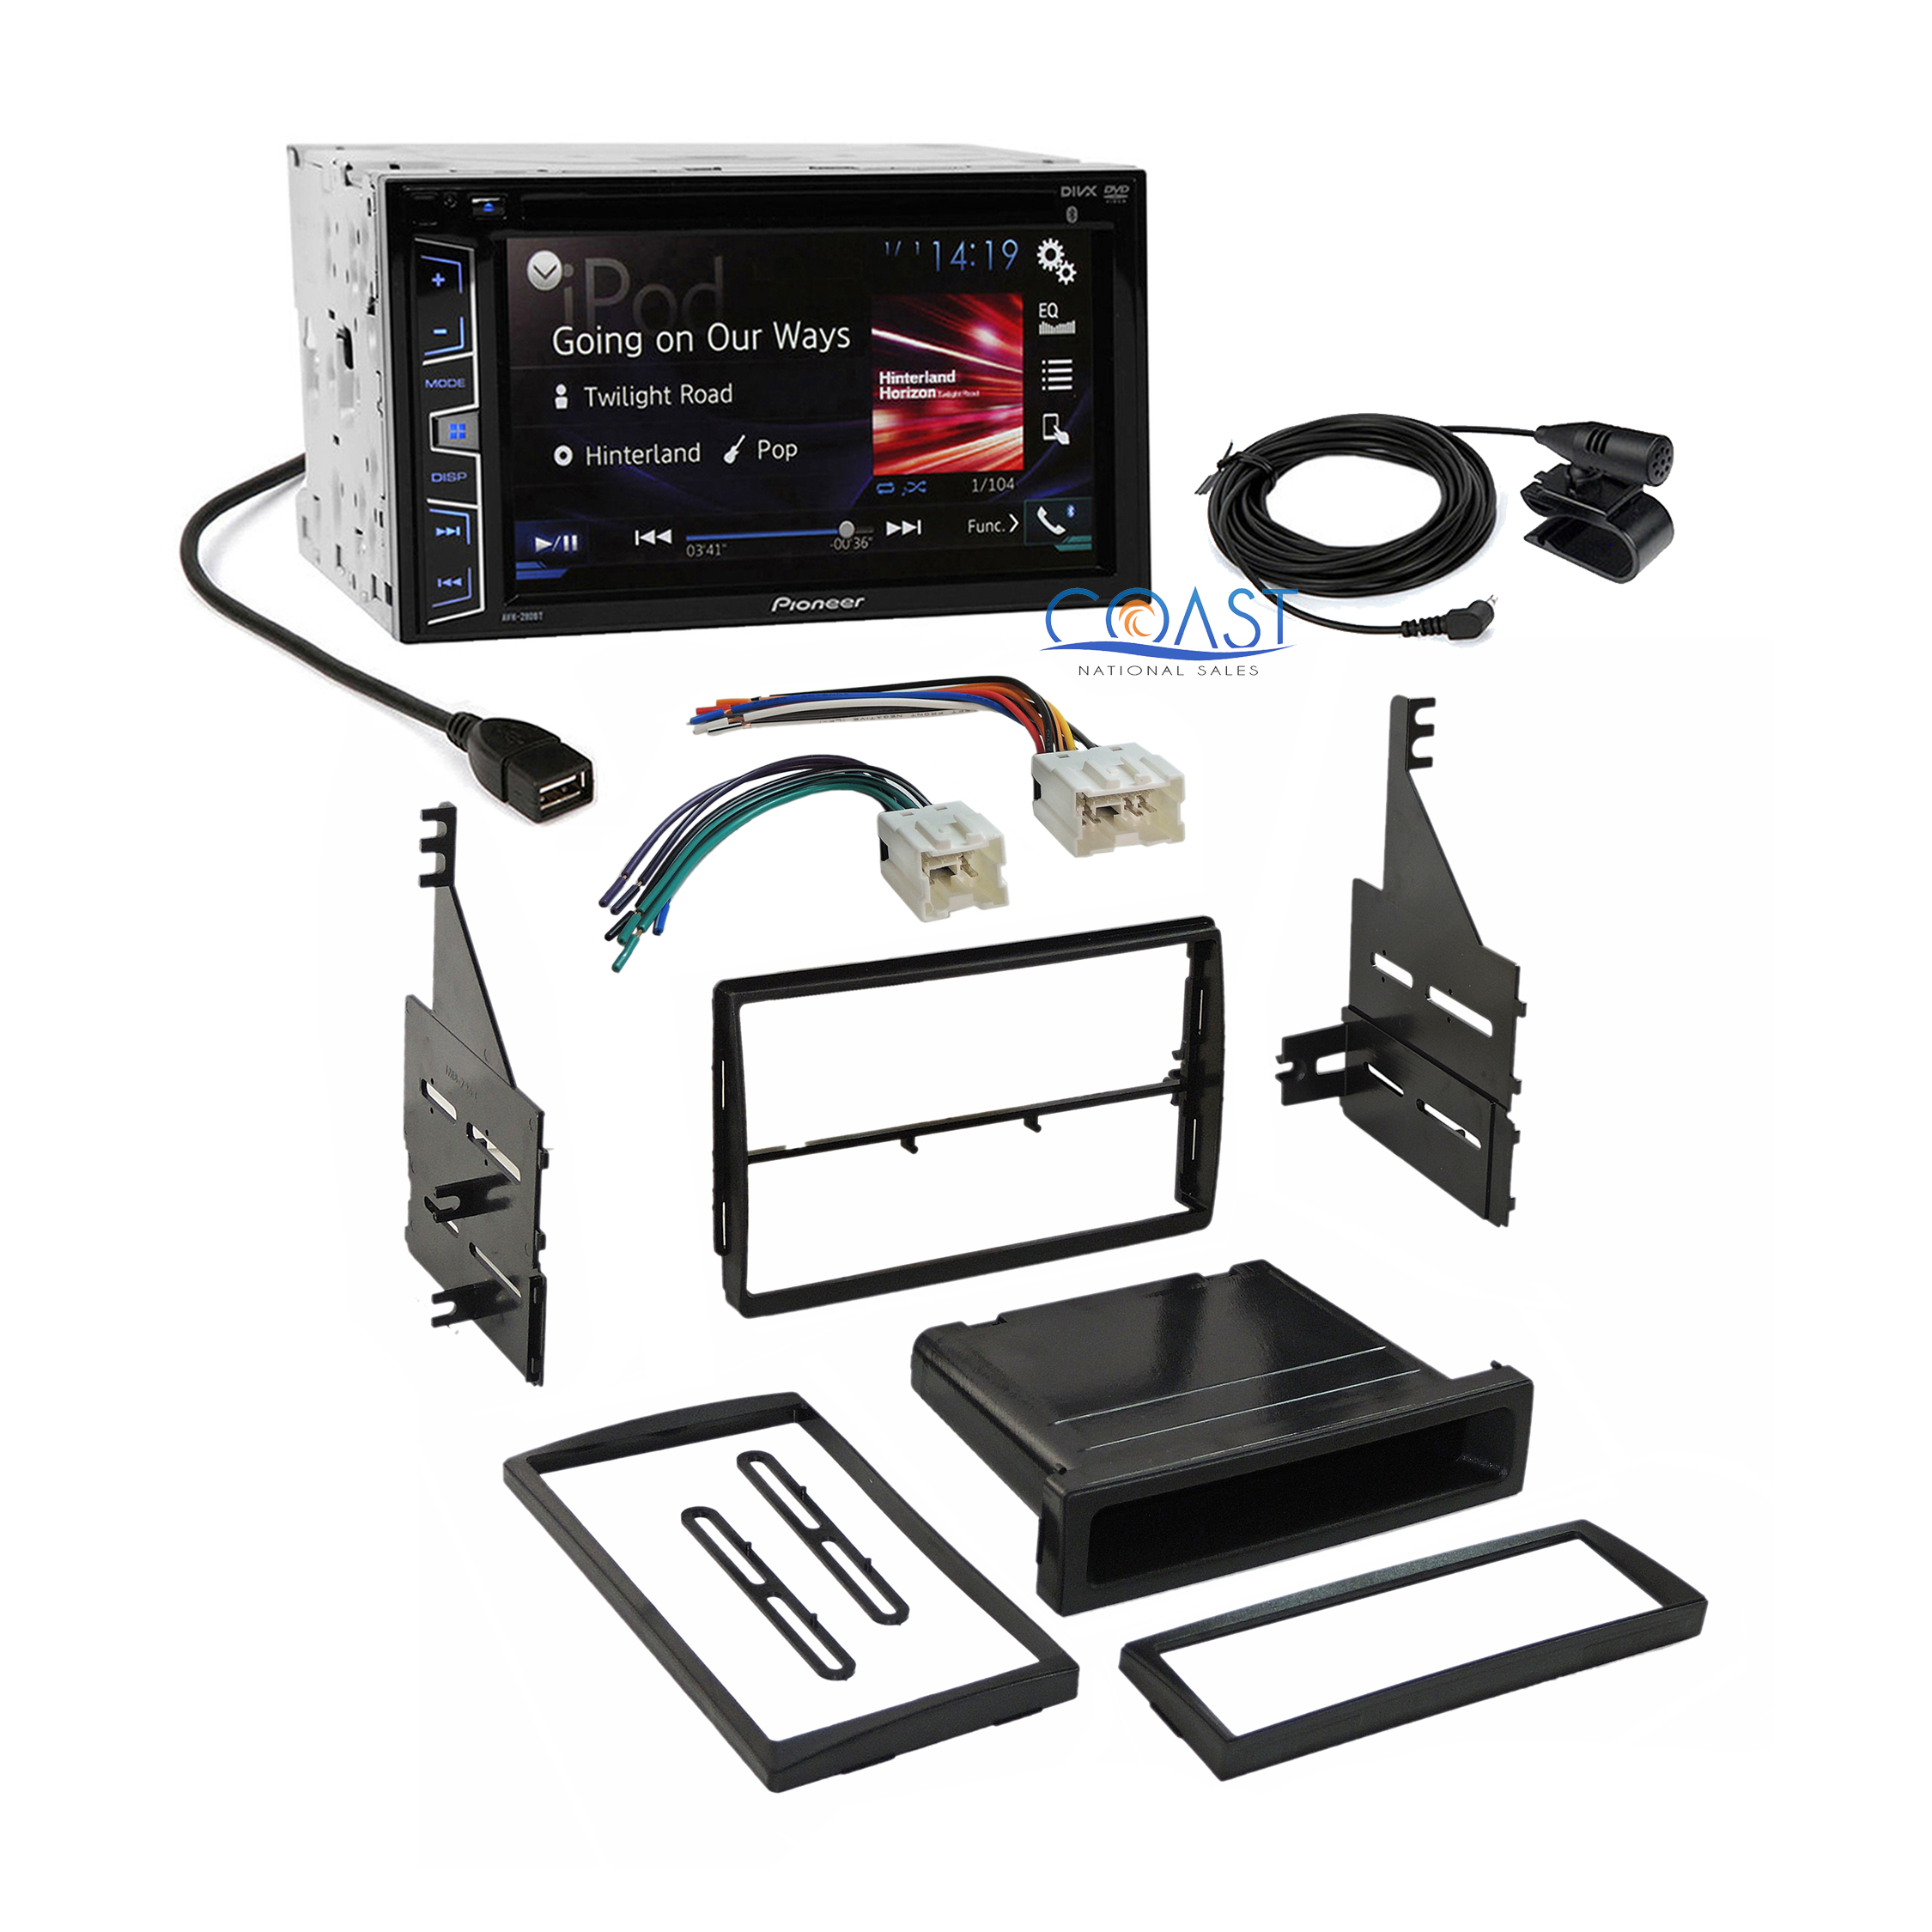 Pioneer Radio Stereo Dash Kit Wire Harness Antenna For